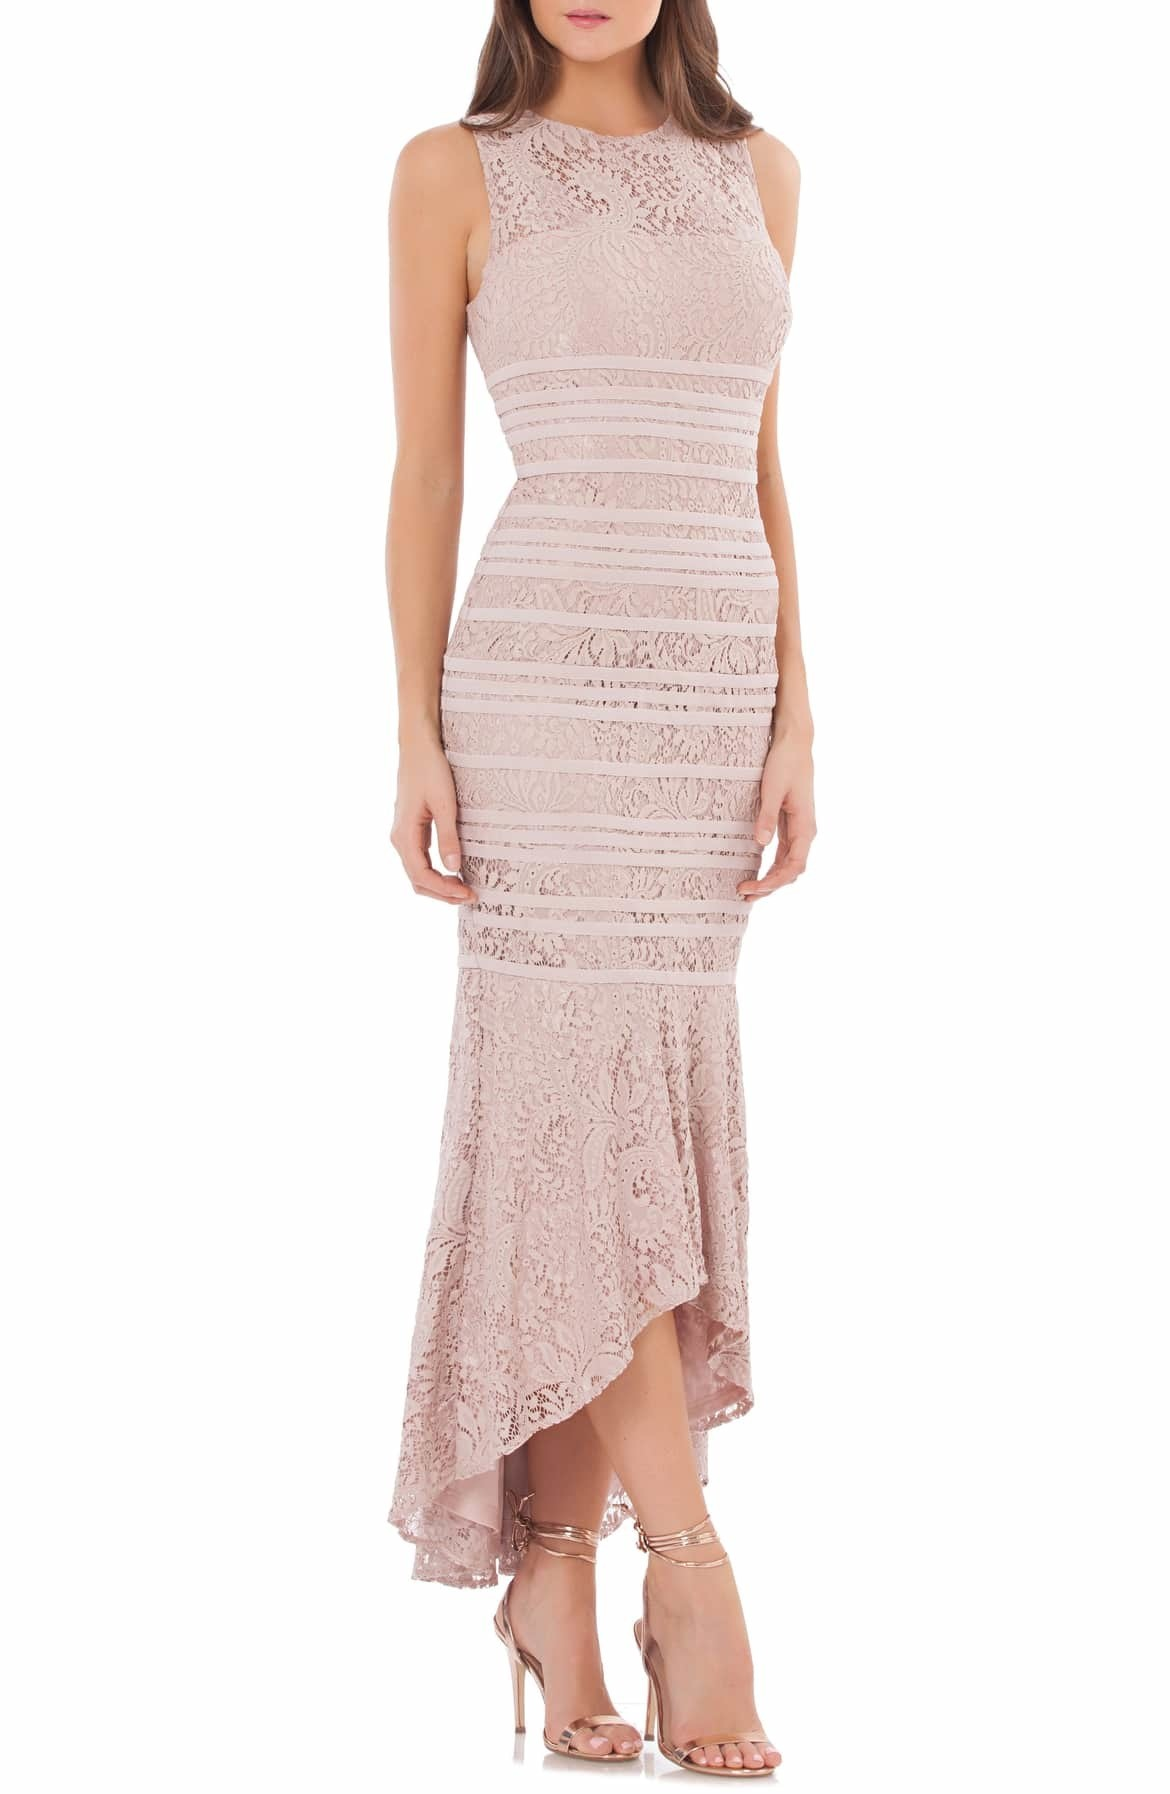 4b162c55c00 Cute Tea Length Mother Of The Bride Dresses - Where To Shop - It s Rosy